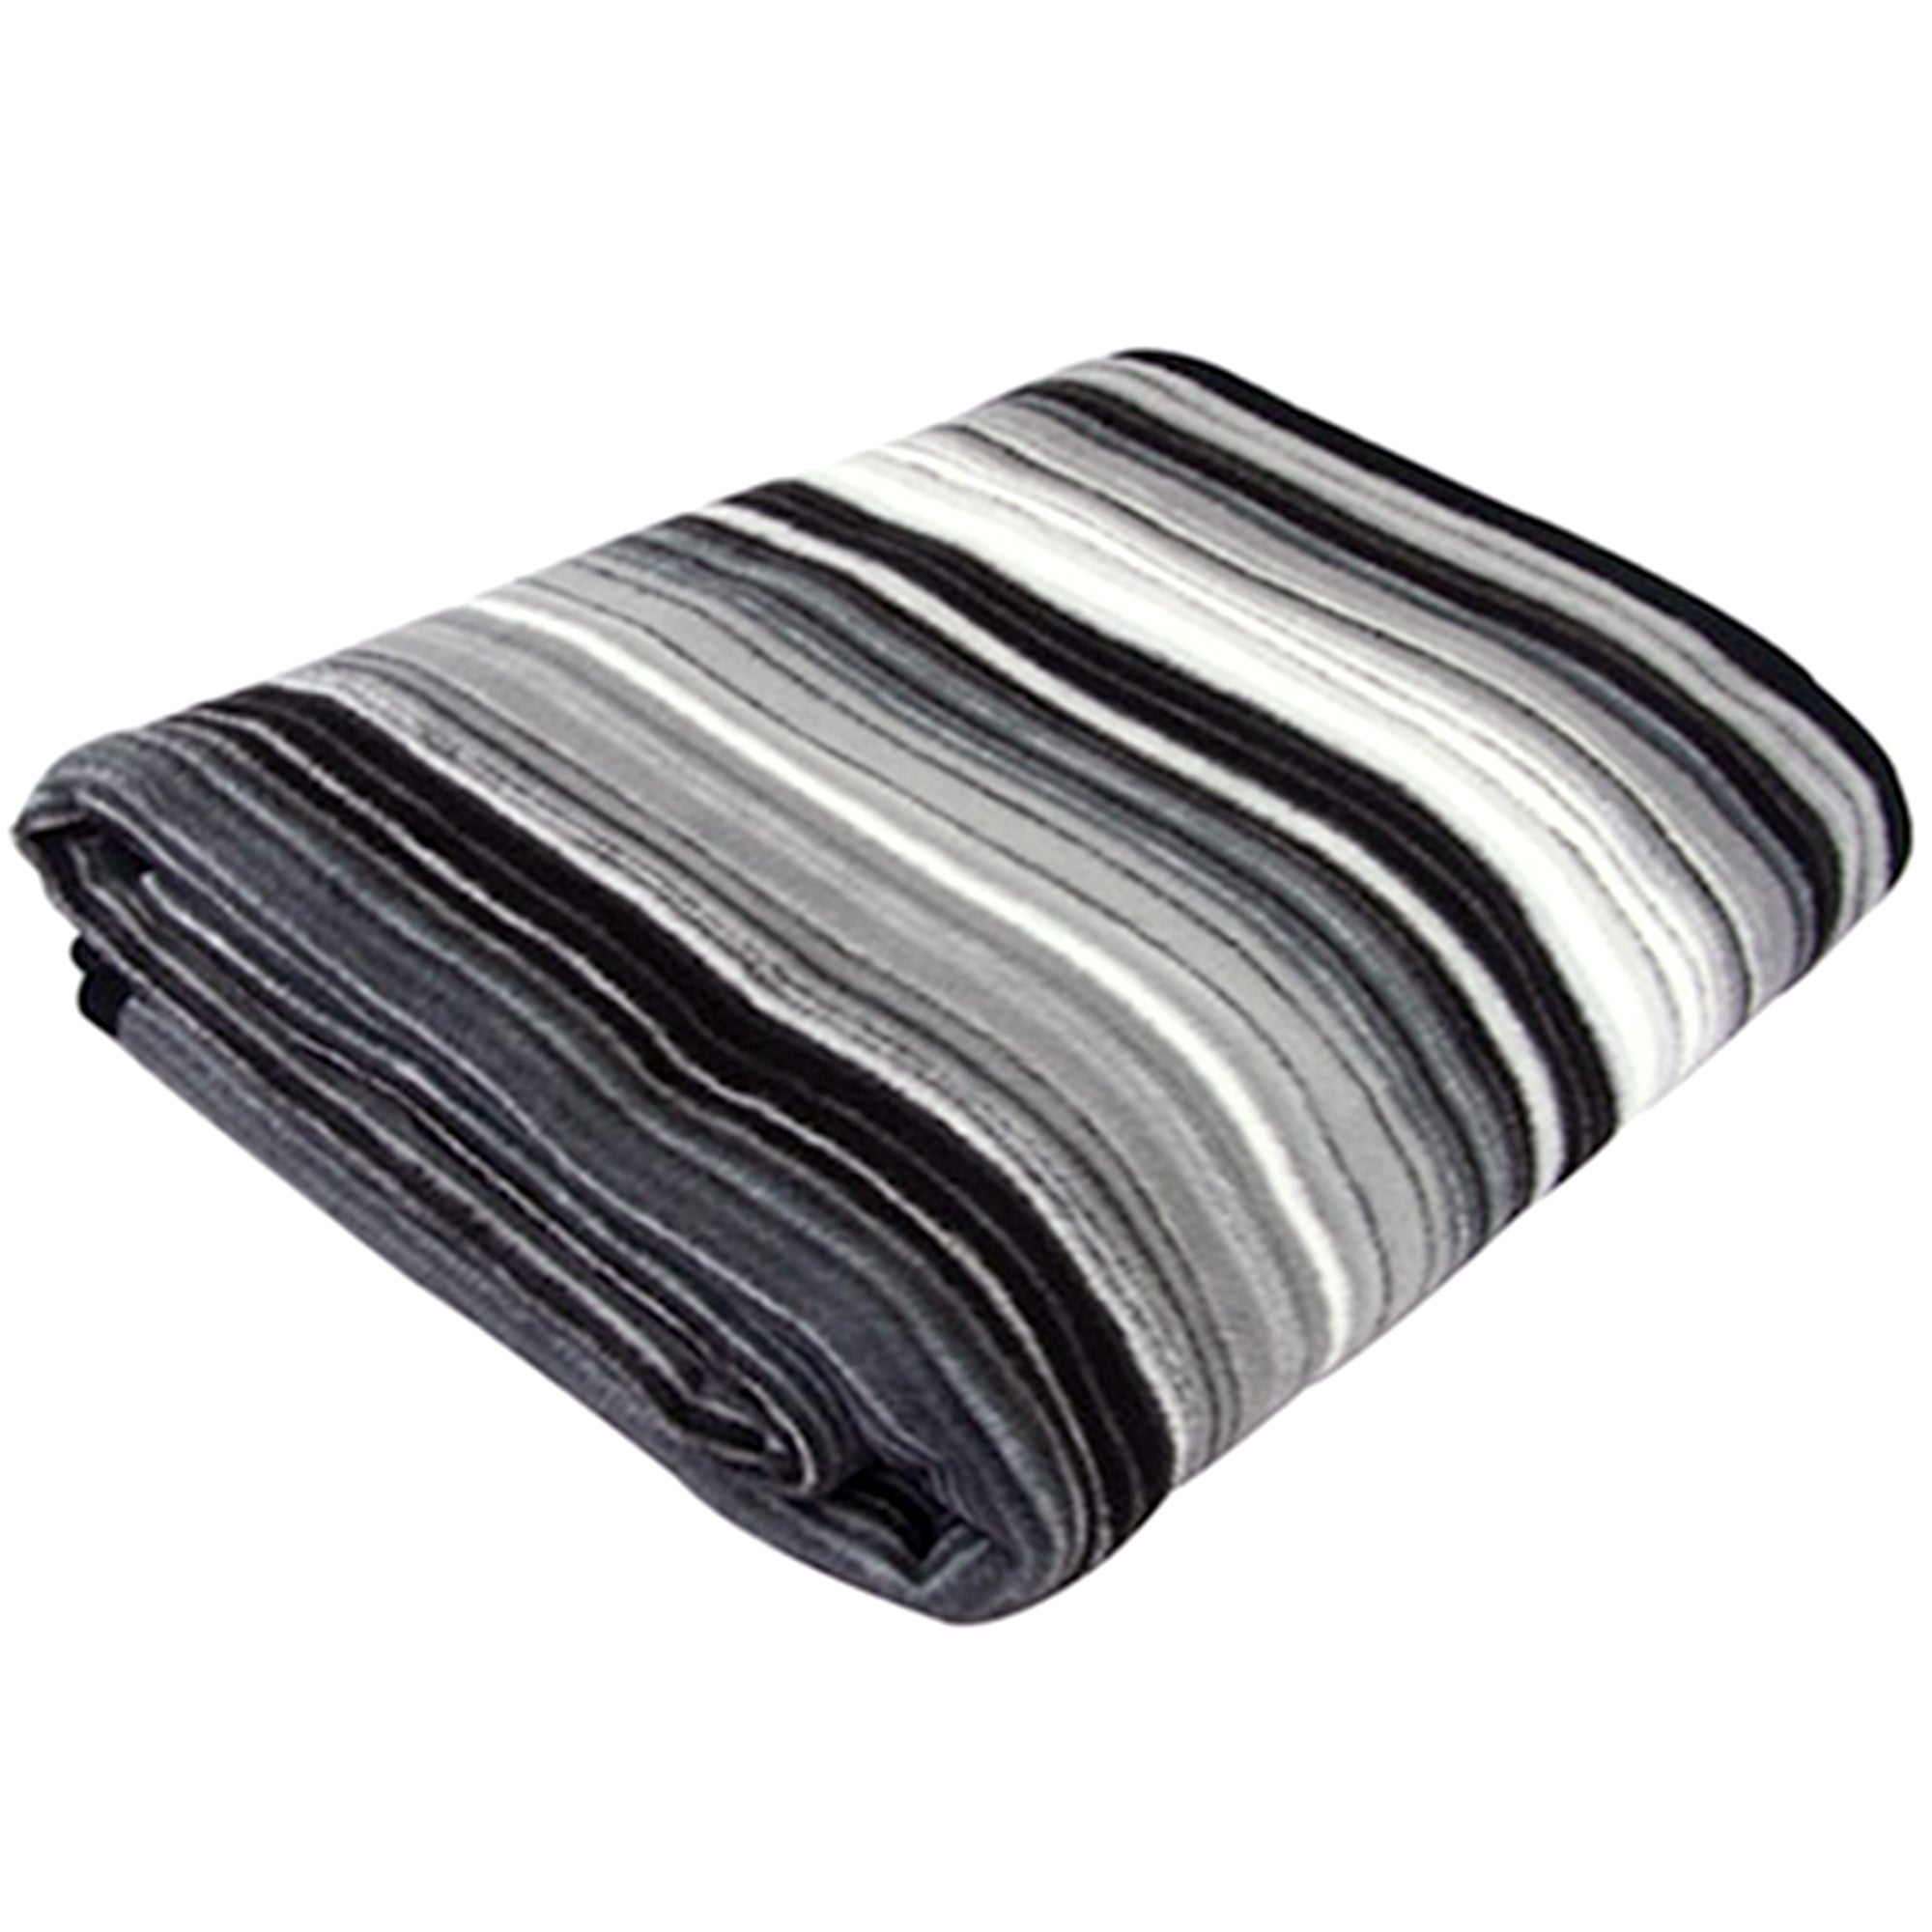 Thermosoft Charcoal Safari Blanket